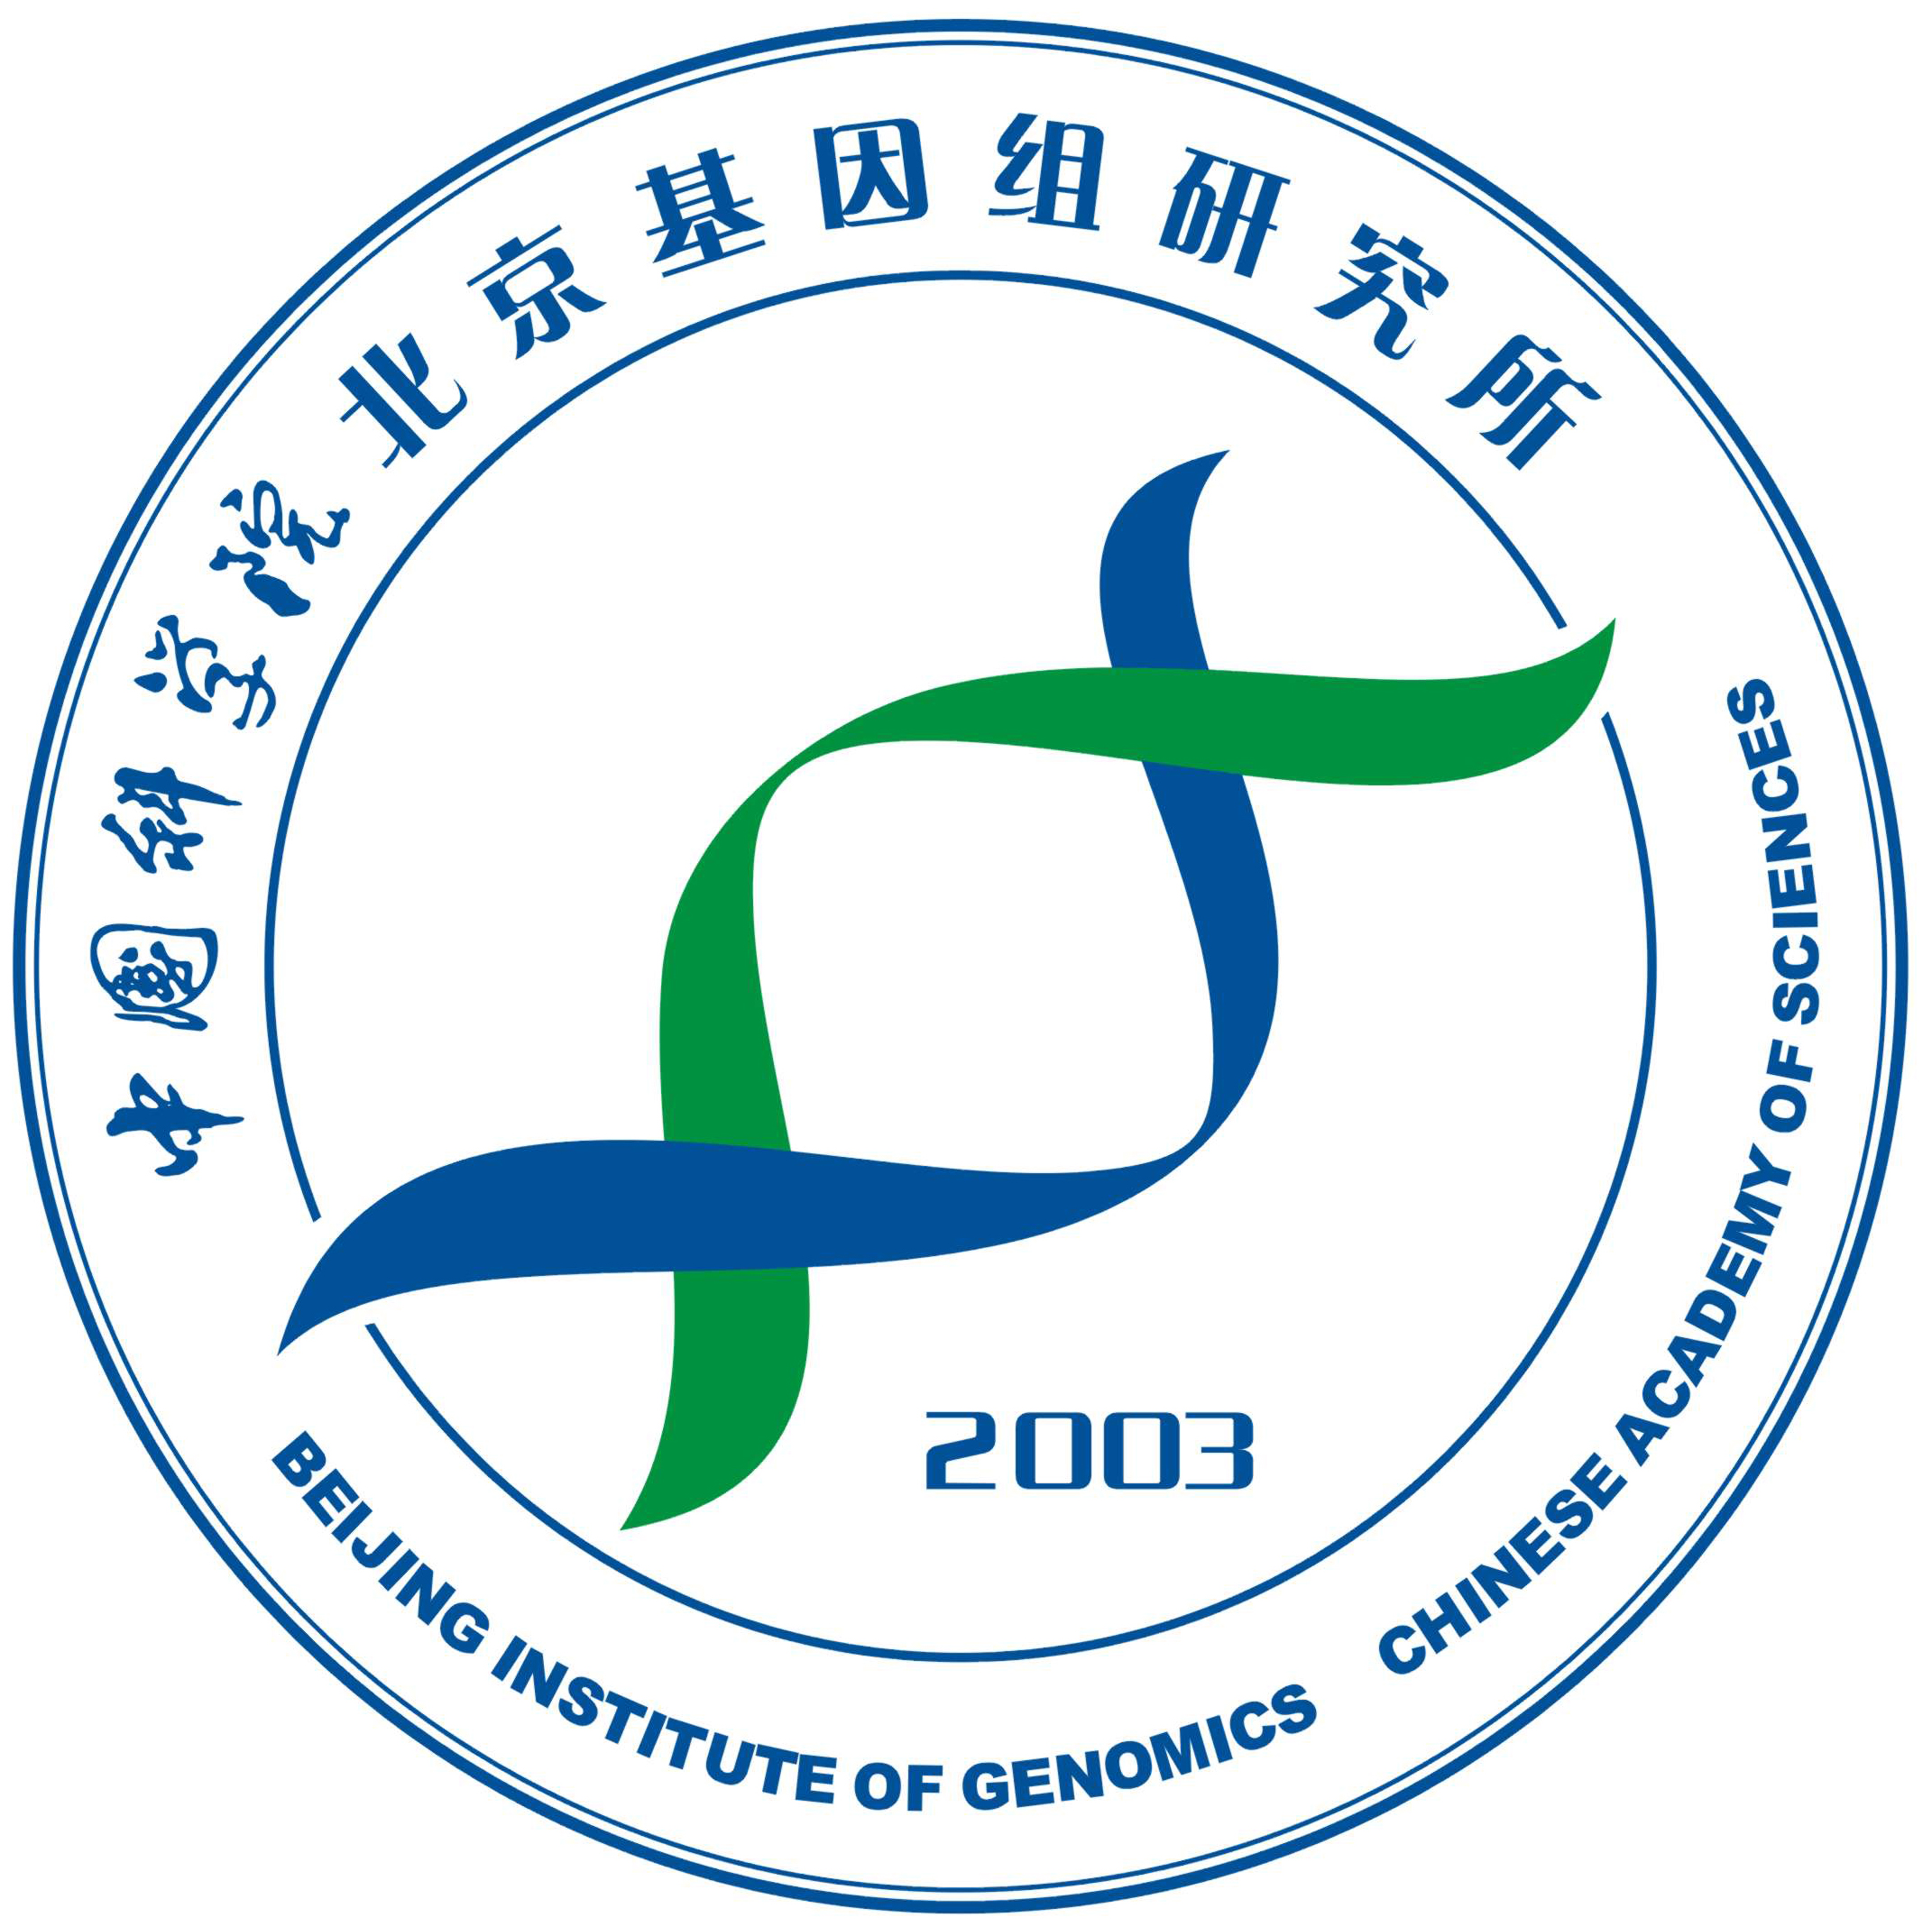 Beijing Institute of Genomics